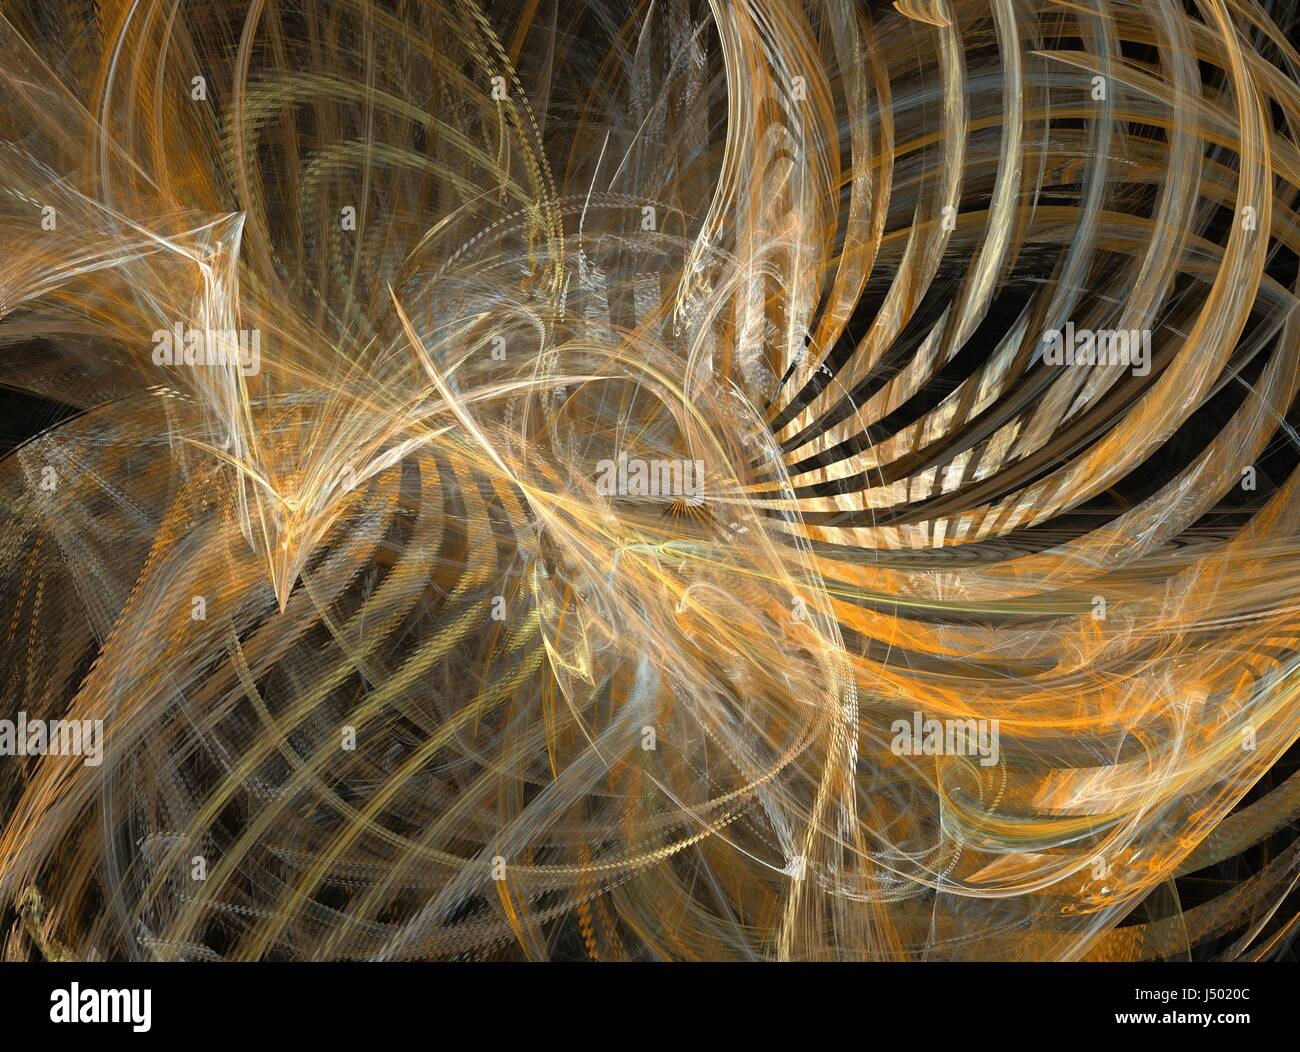 Curved Lines In Art : D rendering with golden abstract fractal curved lines and